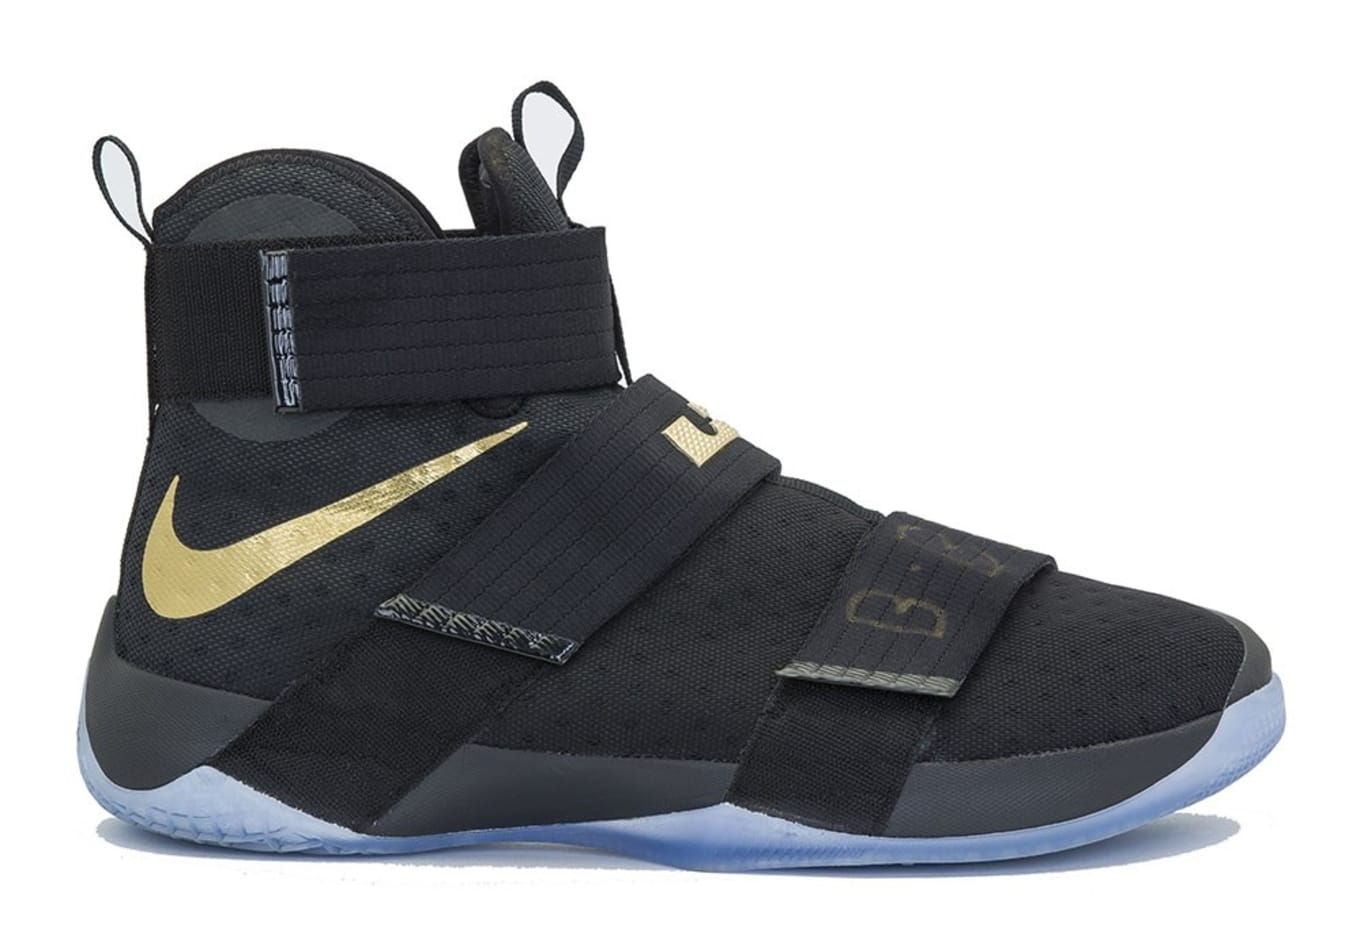 reputable site 03c3f fd70d Nike LeBron Soldier 10  2016 Finals Game 5